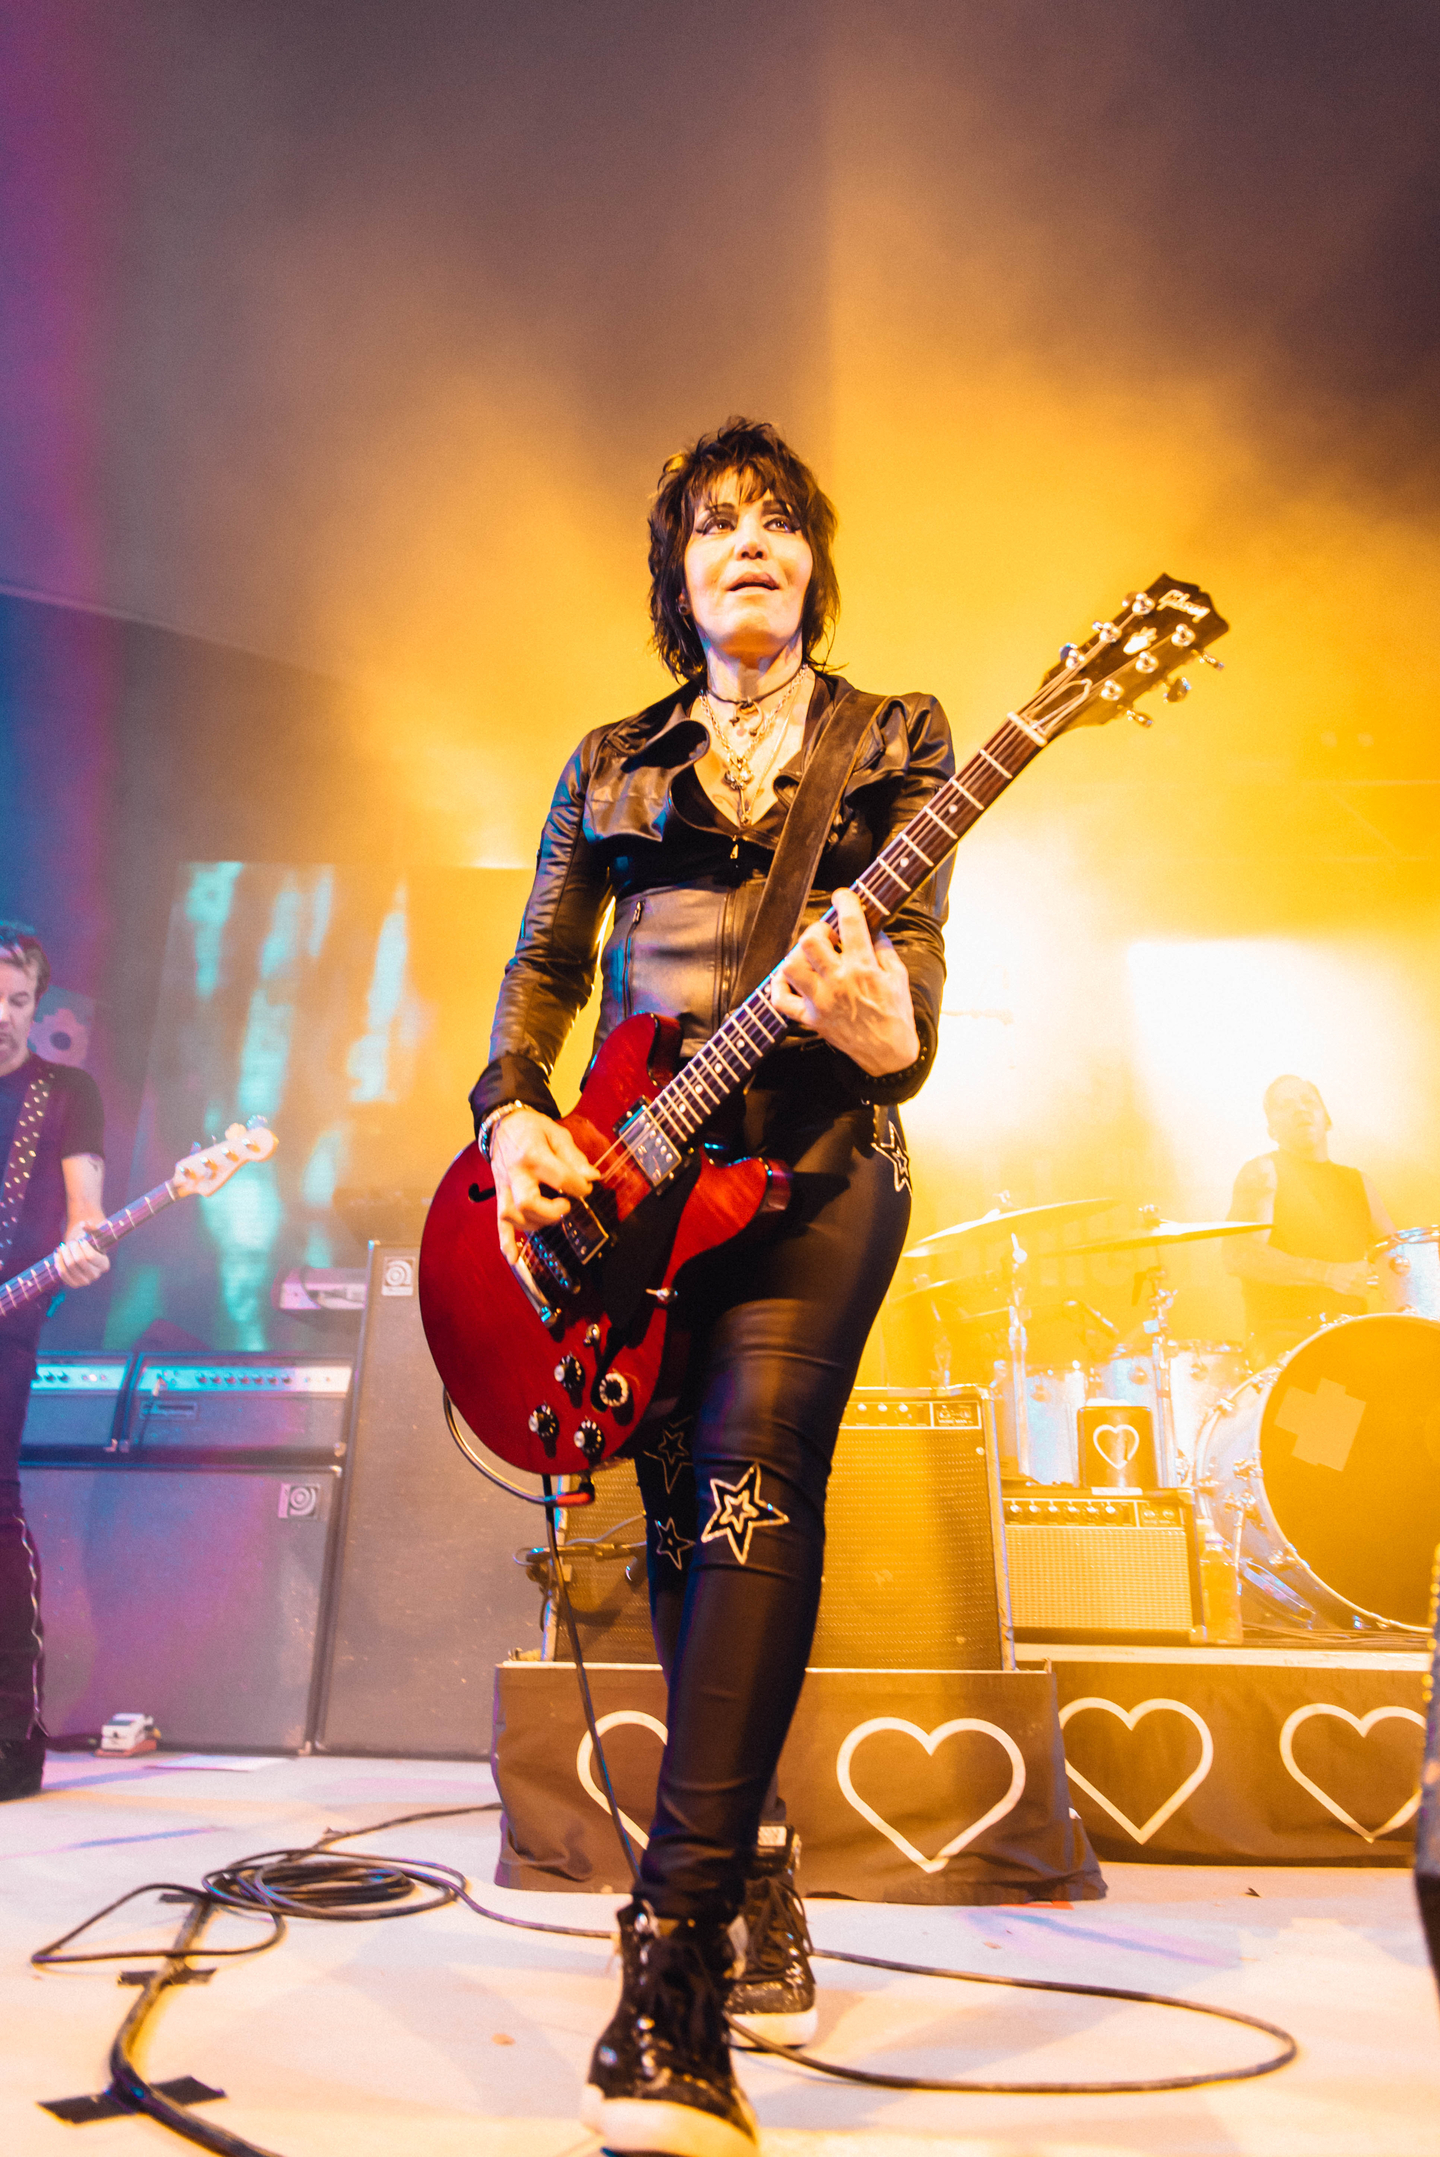 Joan Jett performs at the SXSW Interactive Bash presented by Media Temple at Stubb's.